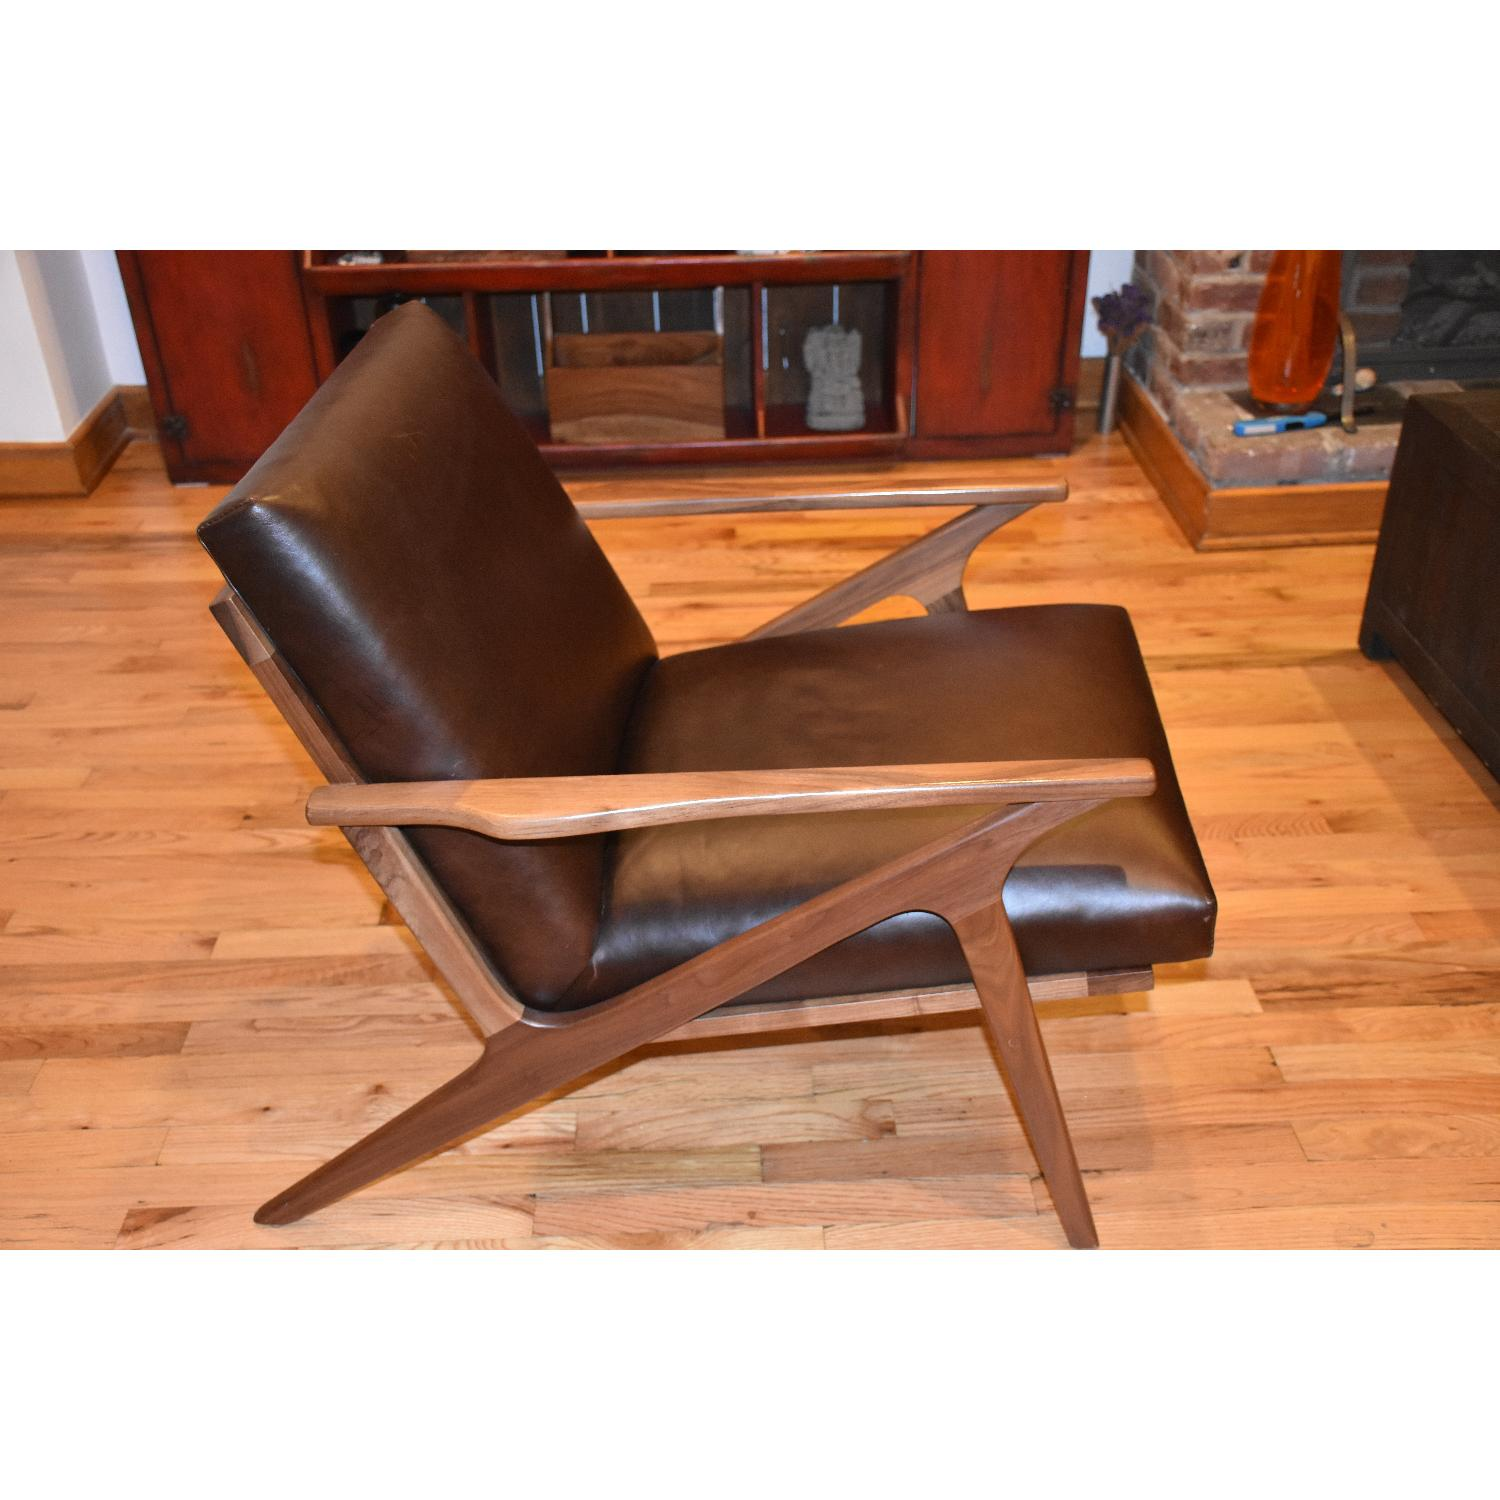 Crate & Barrel Cavett Leather Chair - image-5